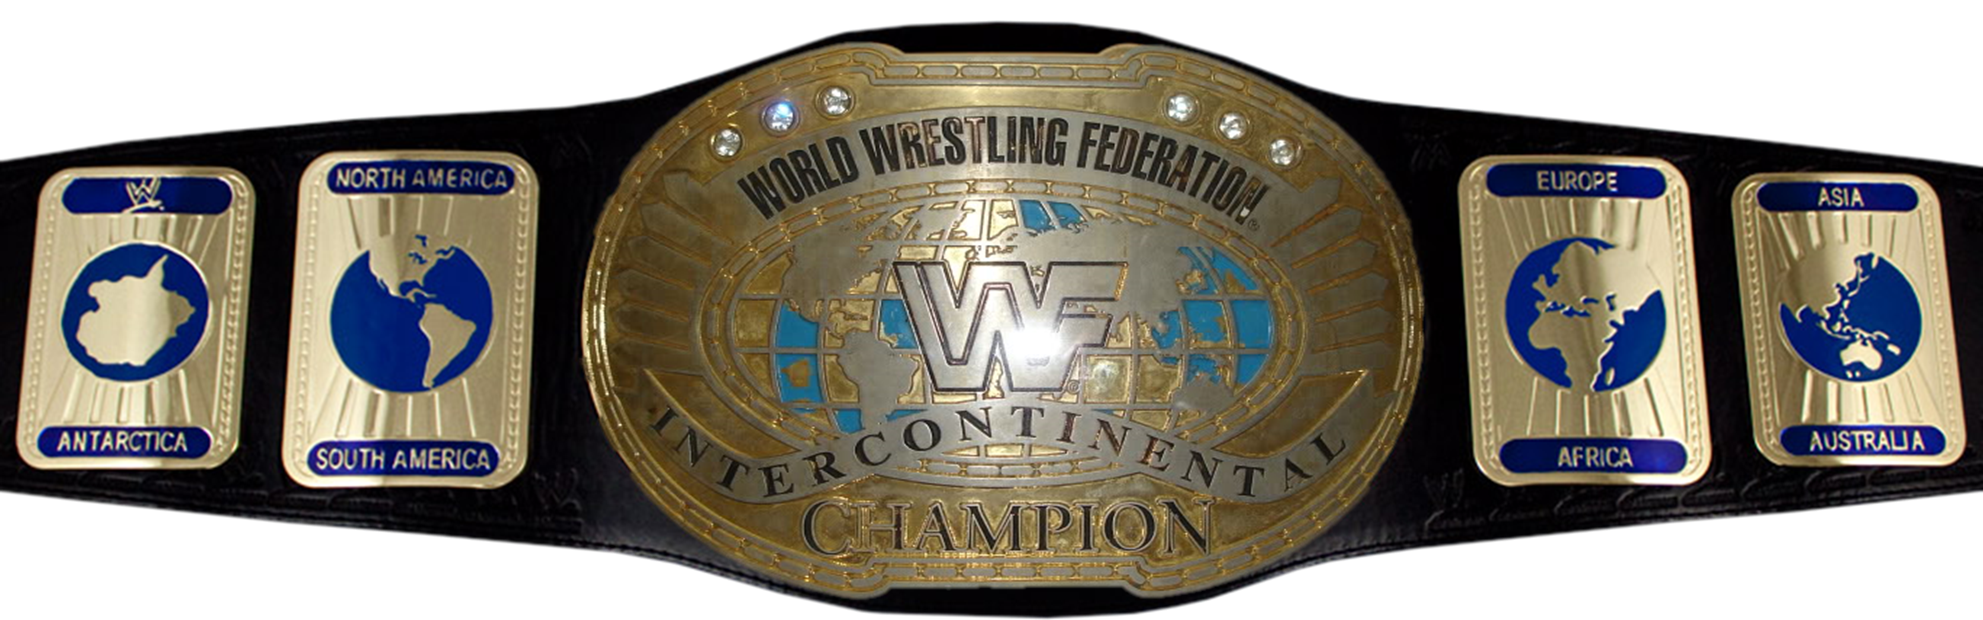 Bmw Of Nwa >> Ring Of Honor Championships Roh Wrestling | Autos Post